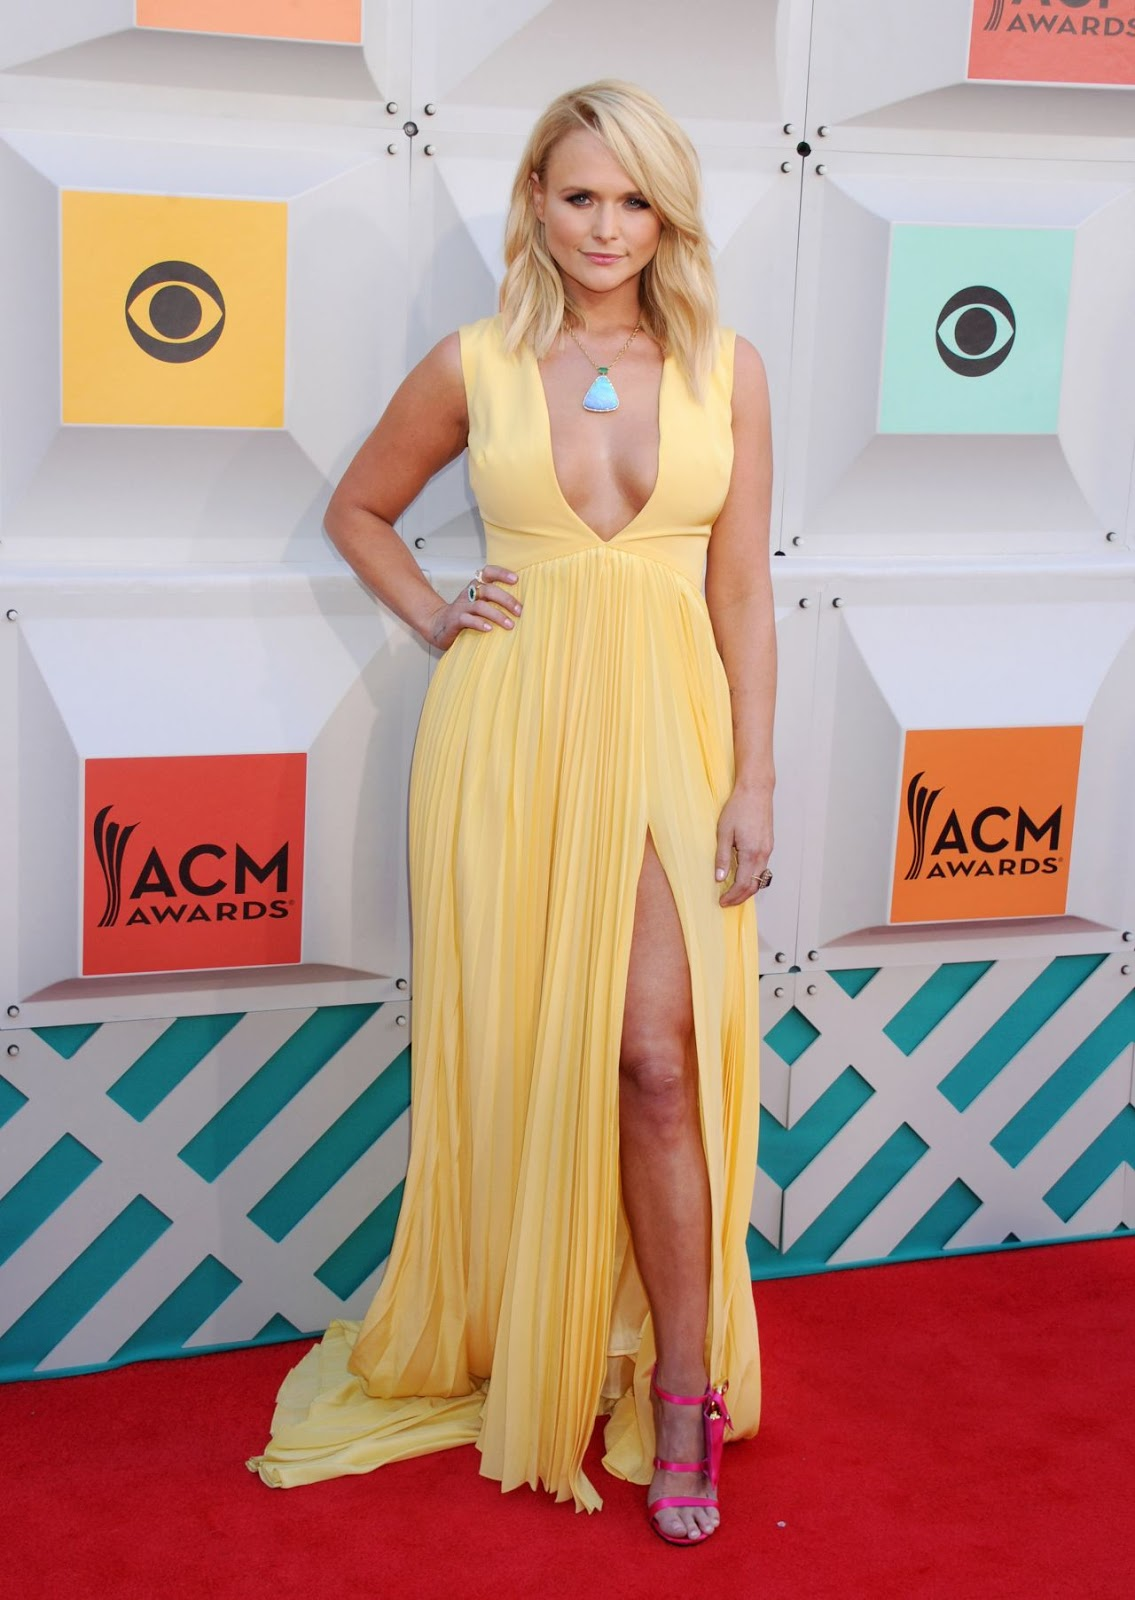 Miranda Lambert wears a plunging dress to the ACM Awards 2016 in Las Vegas